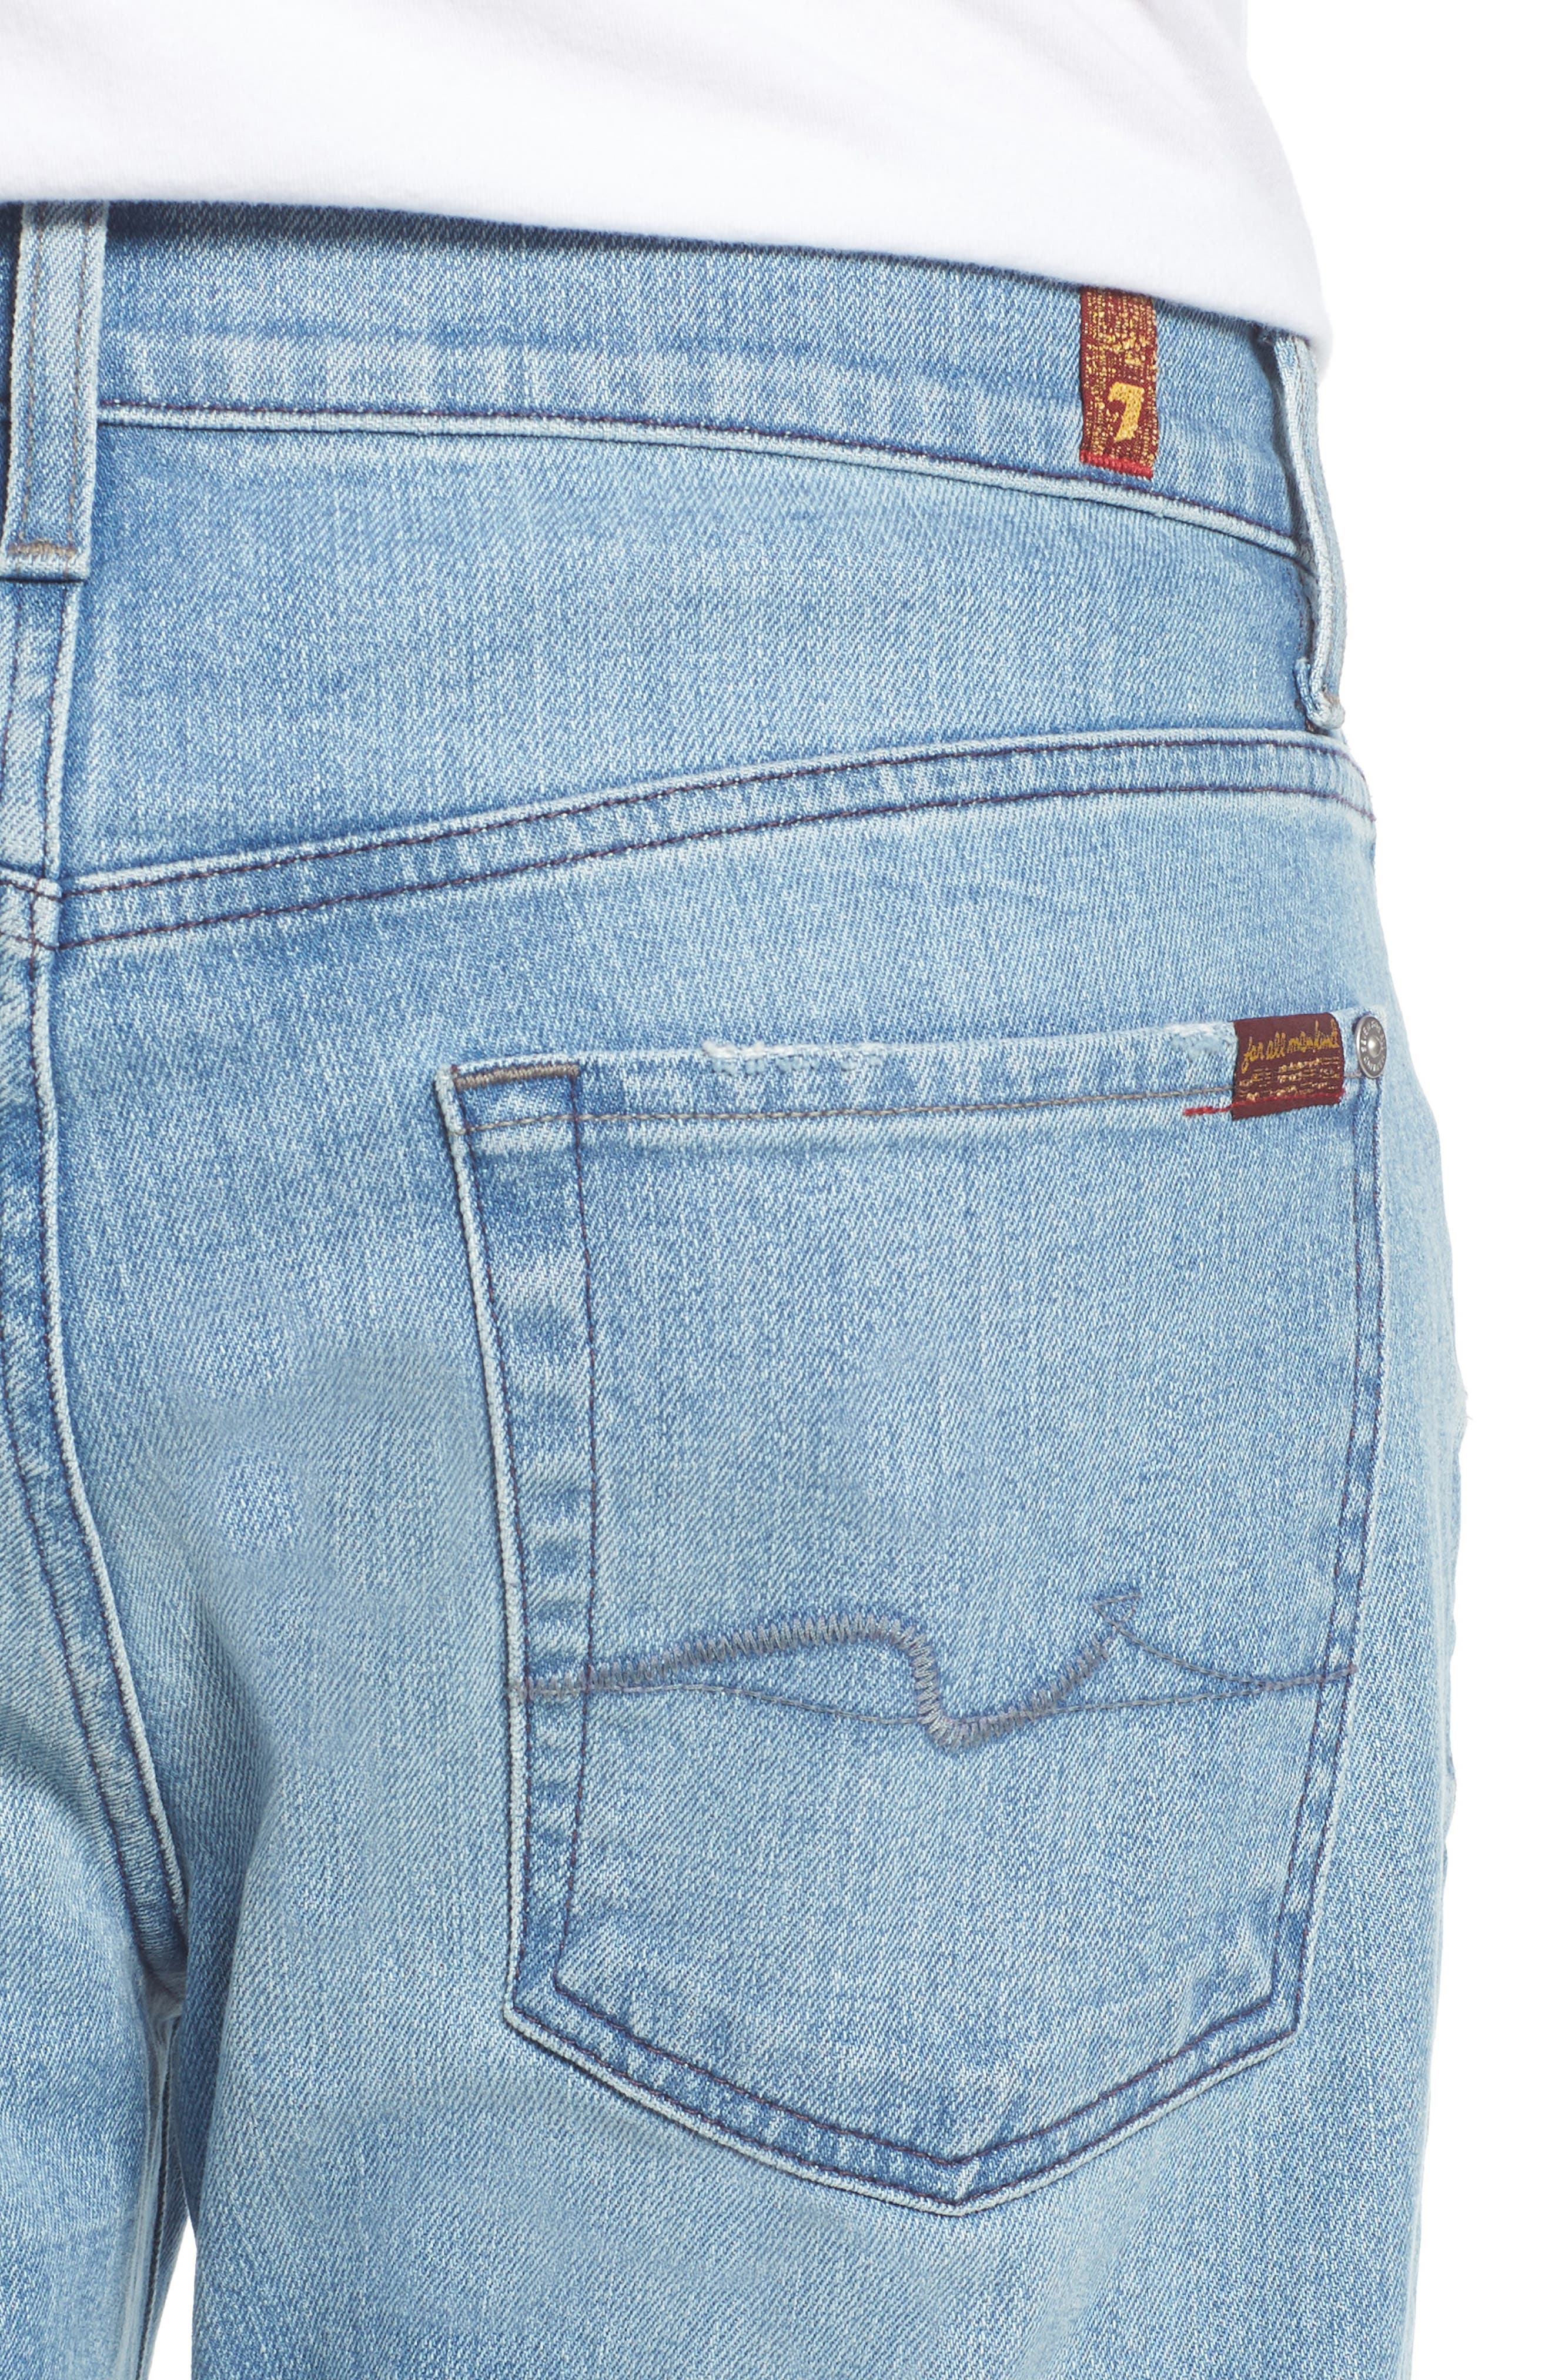 Austyn Relaxed Fit Jeans,                             Alternate thumbnail 4, color,                             Omega